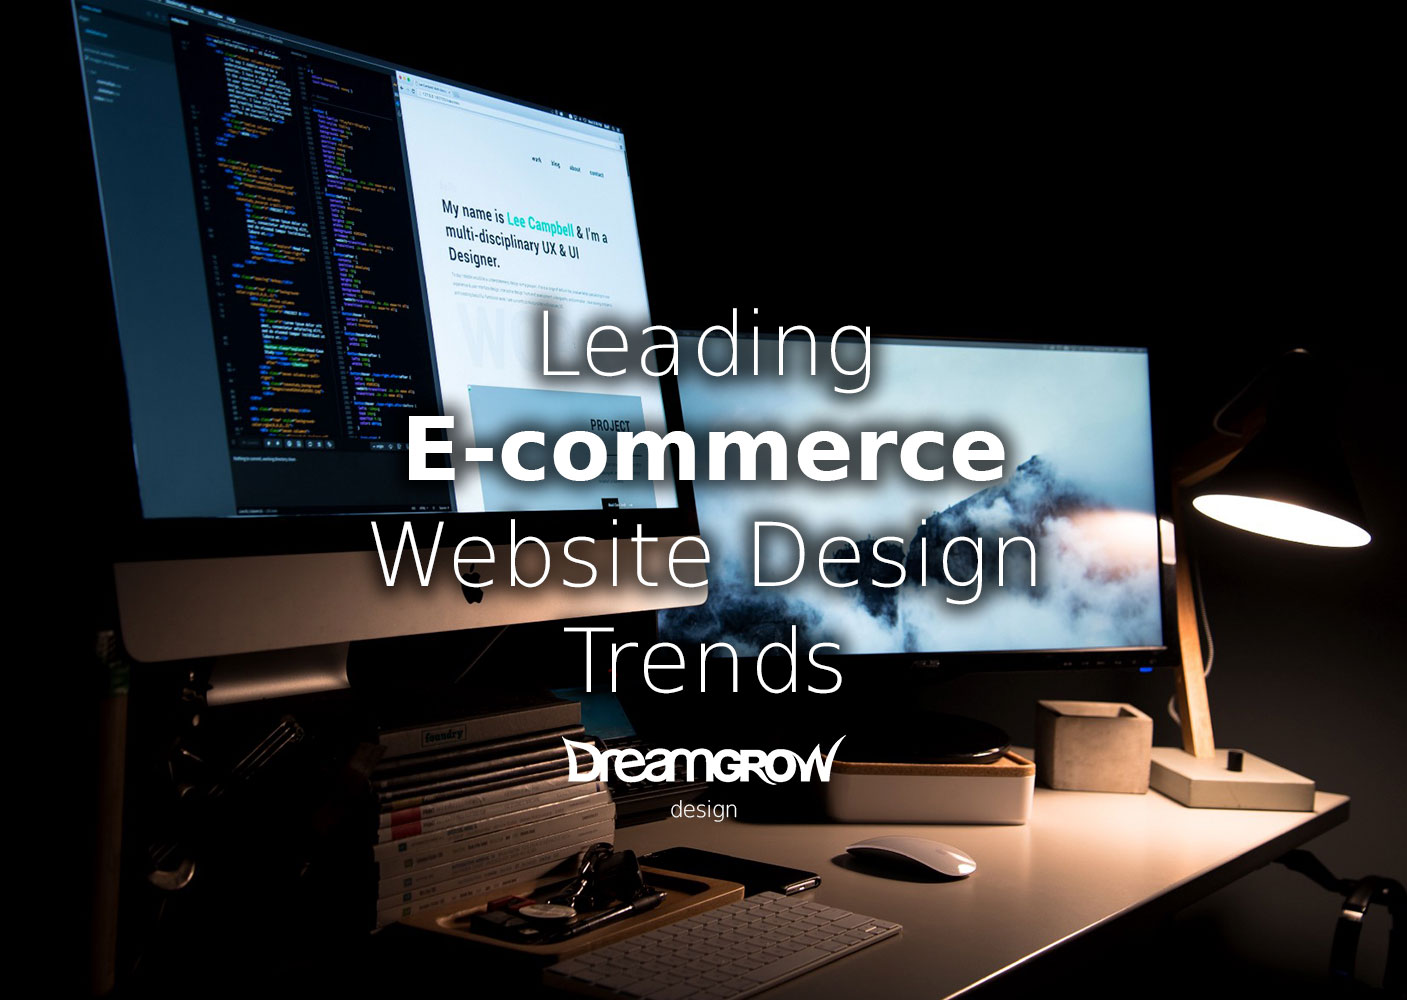 E-commerce Website Design Trends